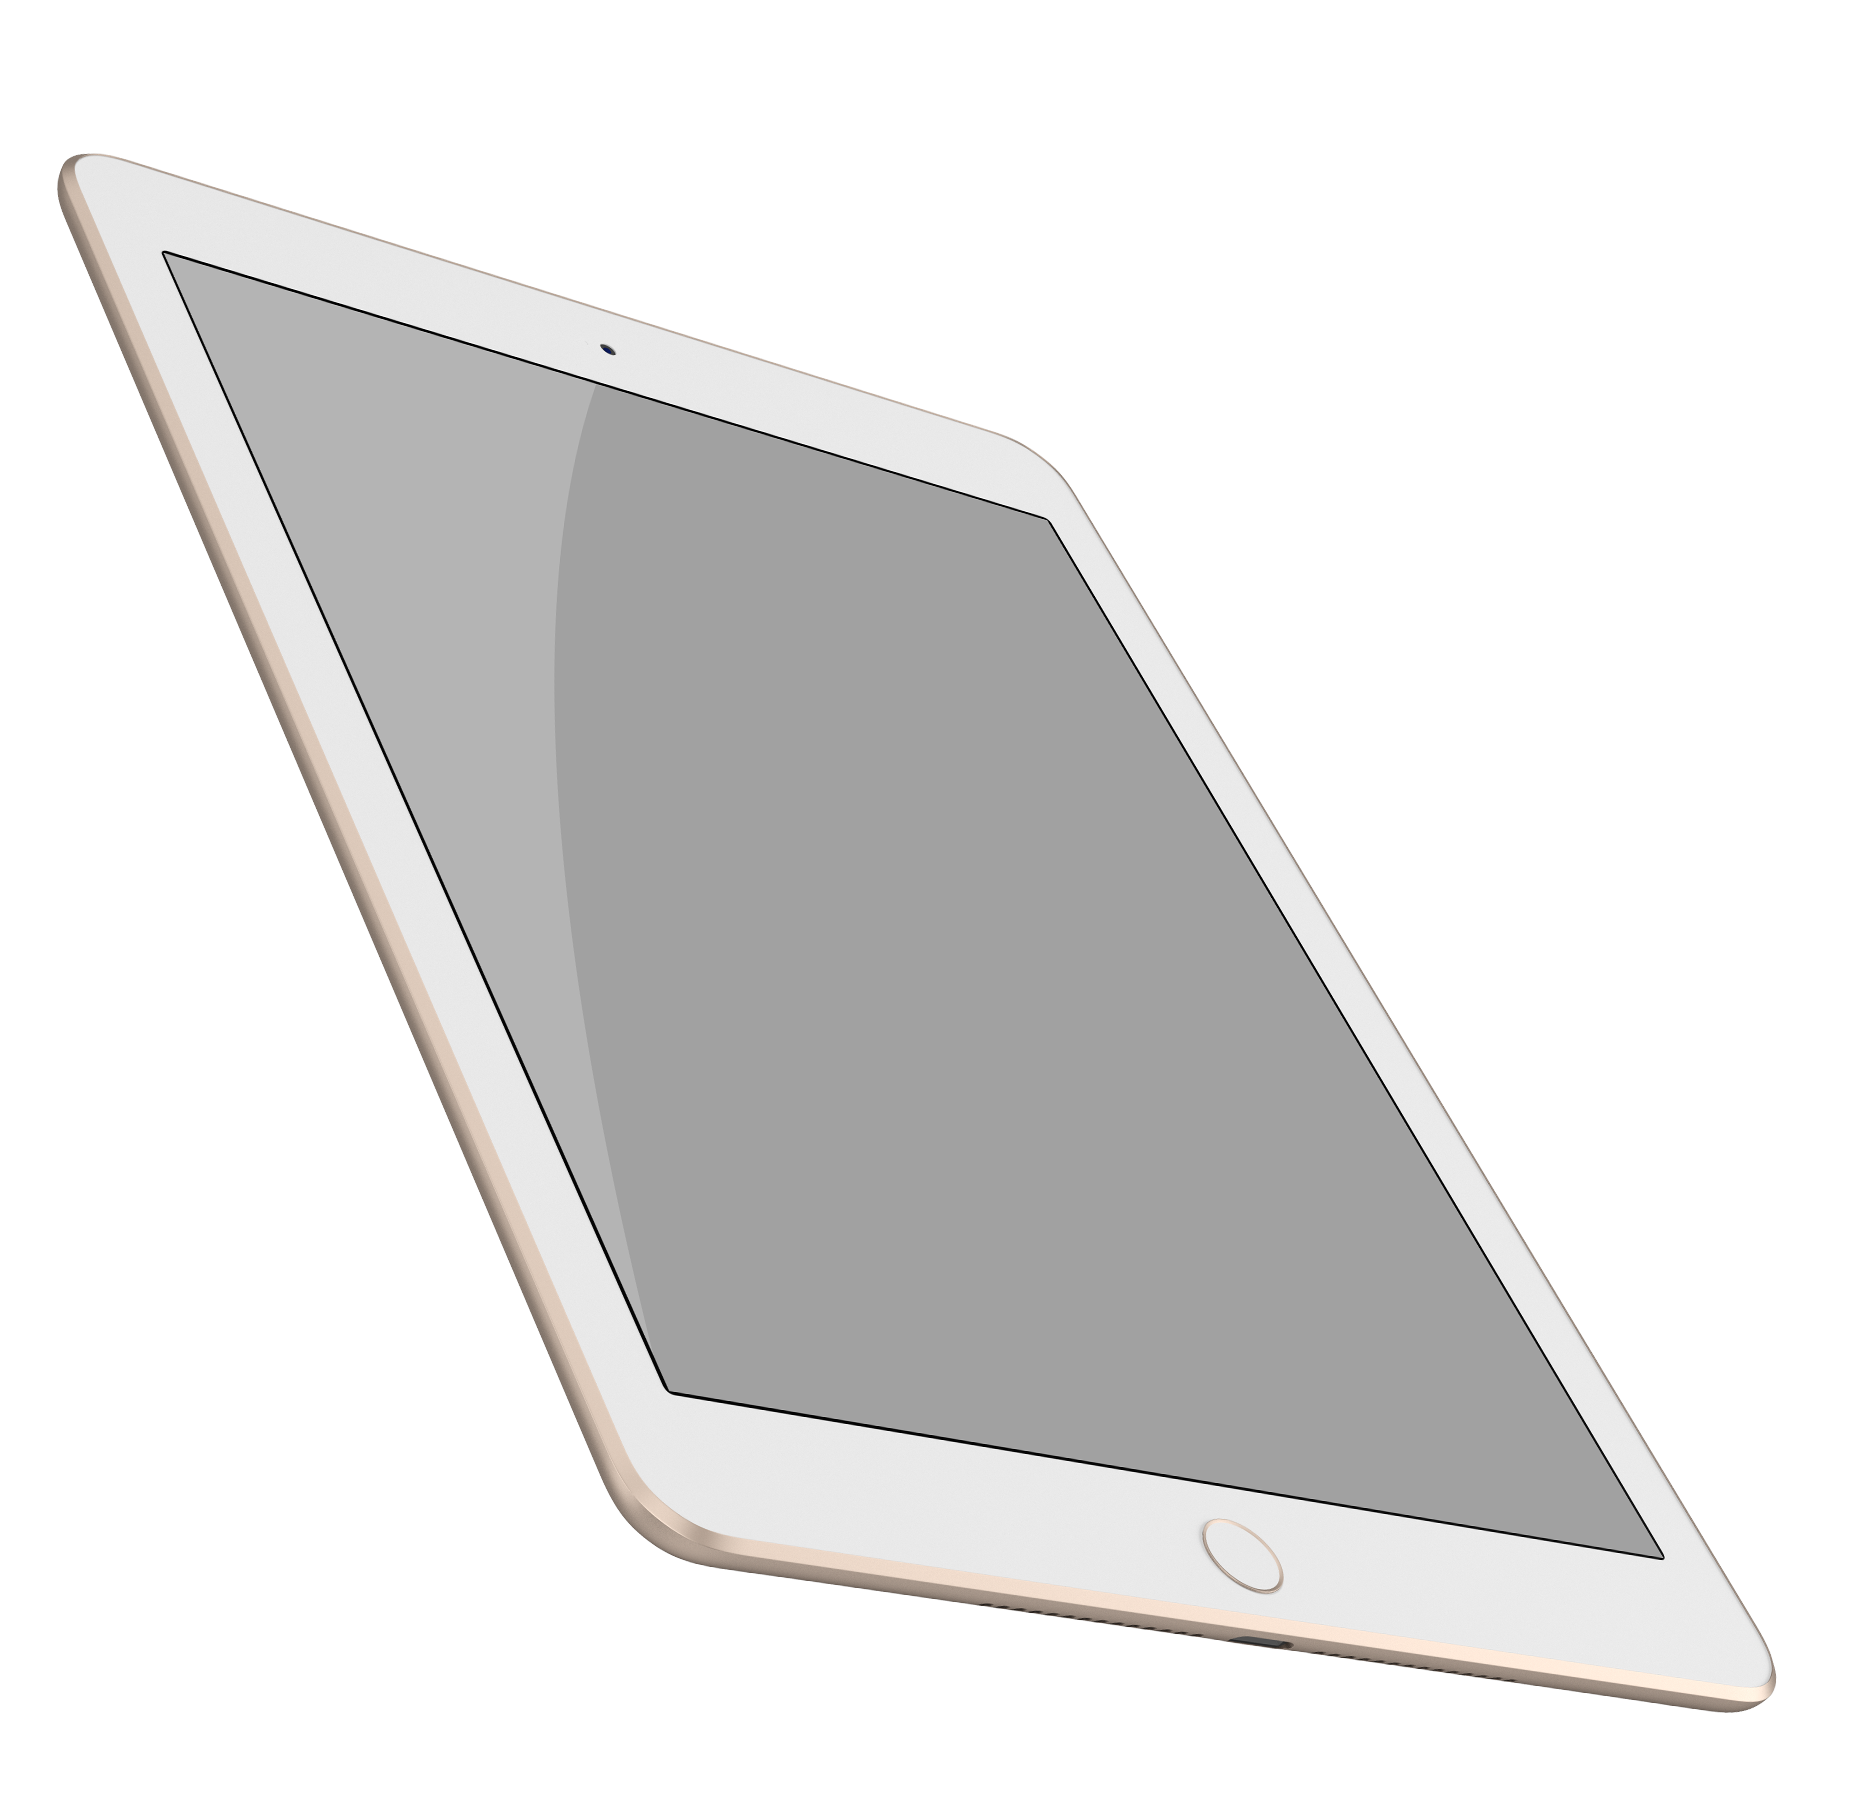 Ipad png by element-tr on DeviantArt